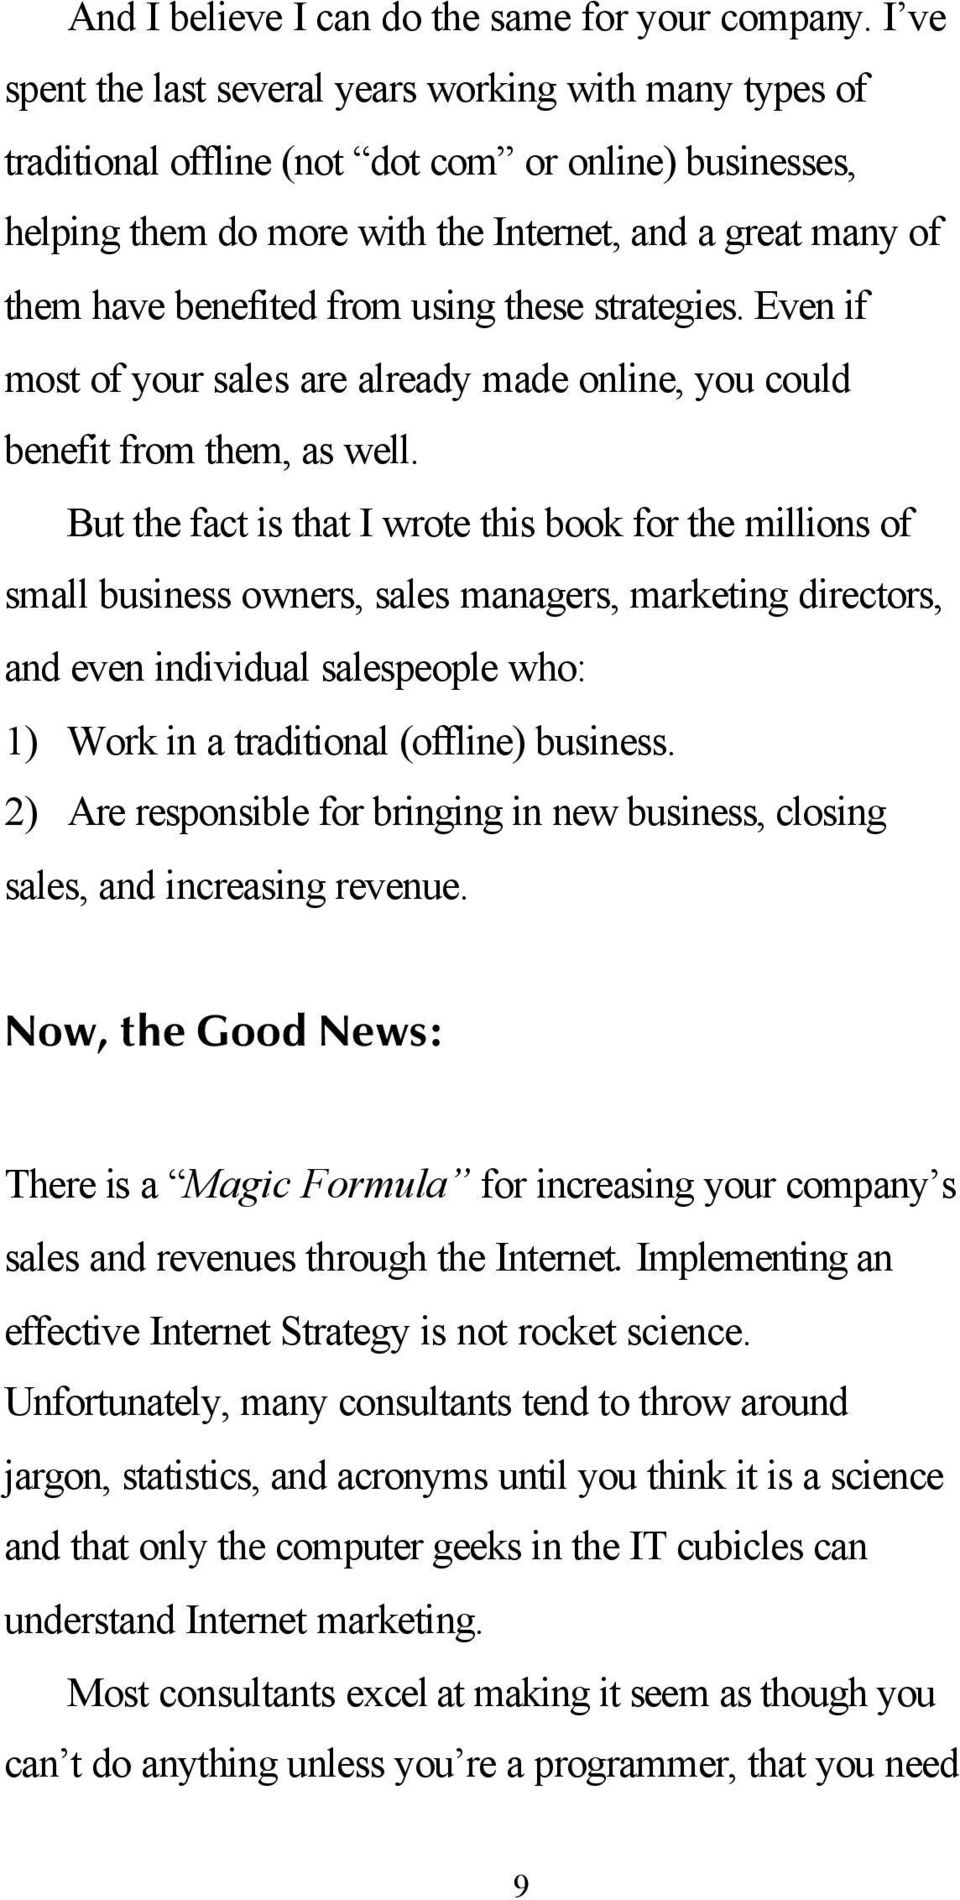 from using these strategies. Even if most of your sales are already made online, you could benefit from them, as well.